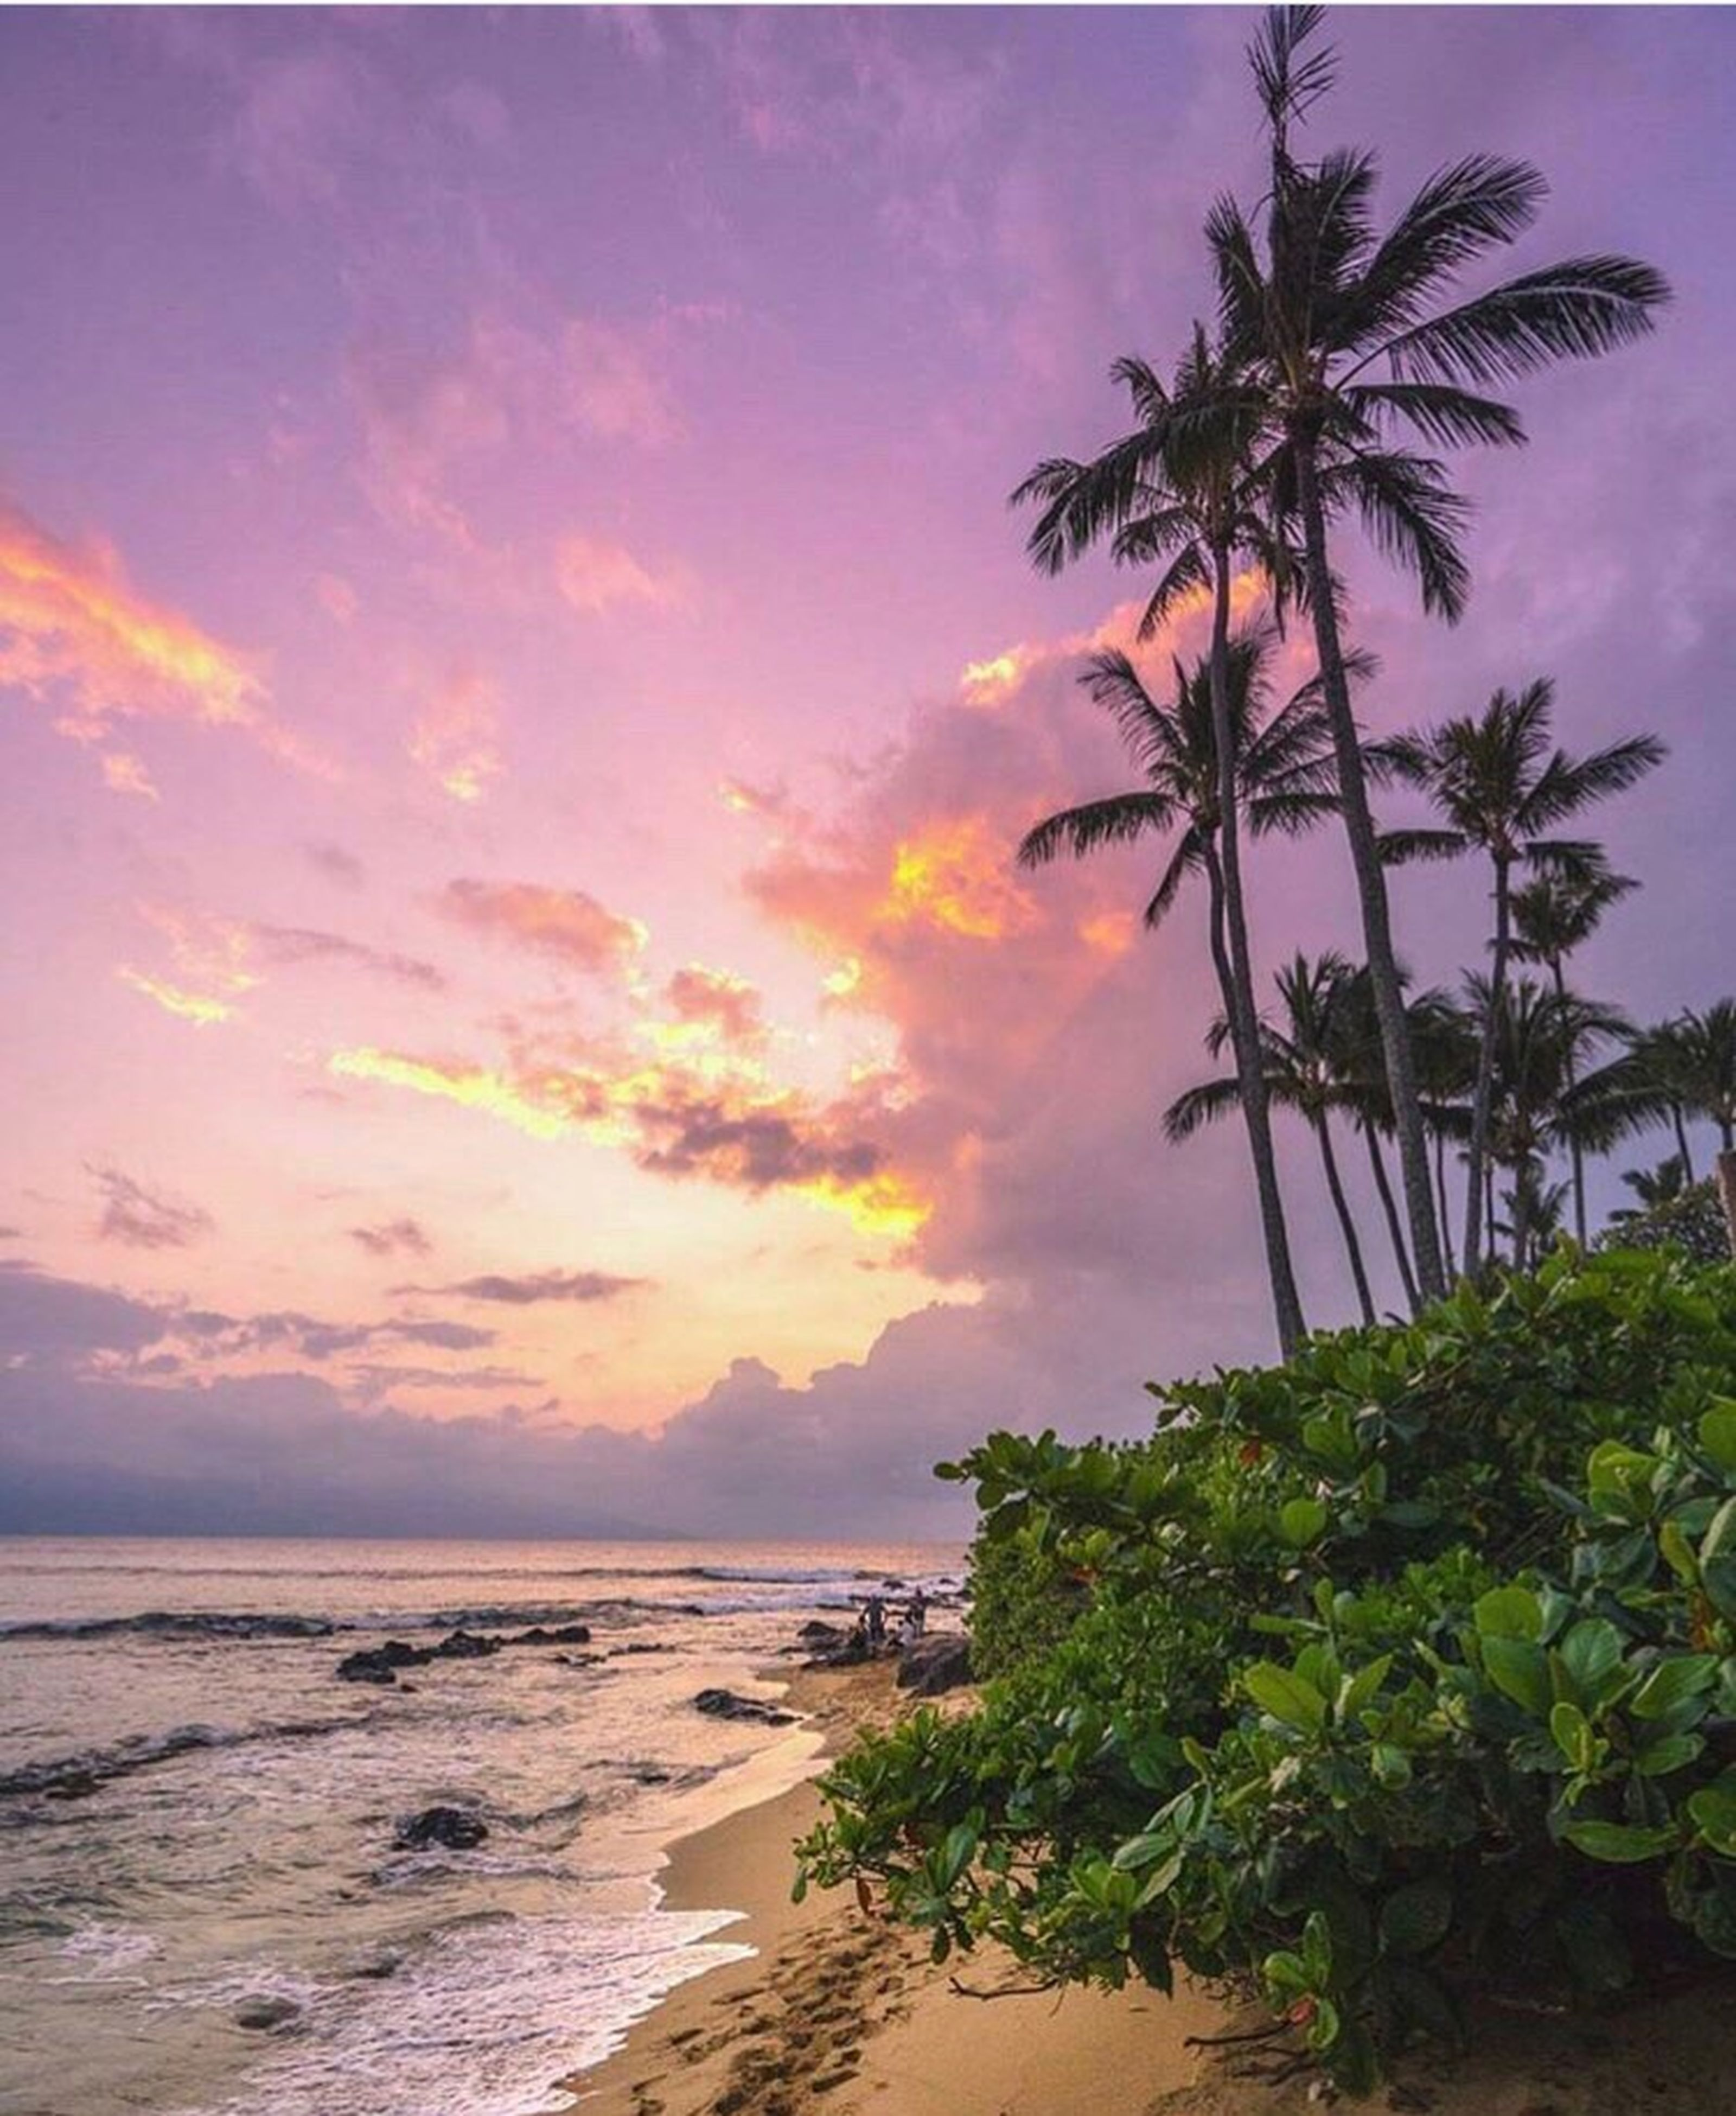 palm tree, sea, beach, scenics, nature, beauty in nature, sunset, tree, tranquil scene, sky, water, no people, tranquility, horizon over water, outdoors, cloud - sky, sand, growth, day